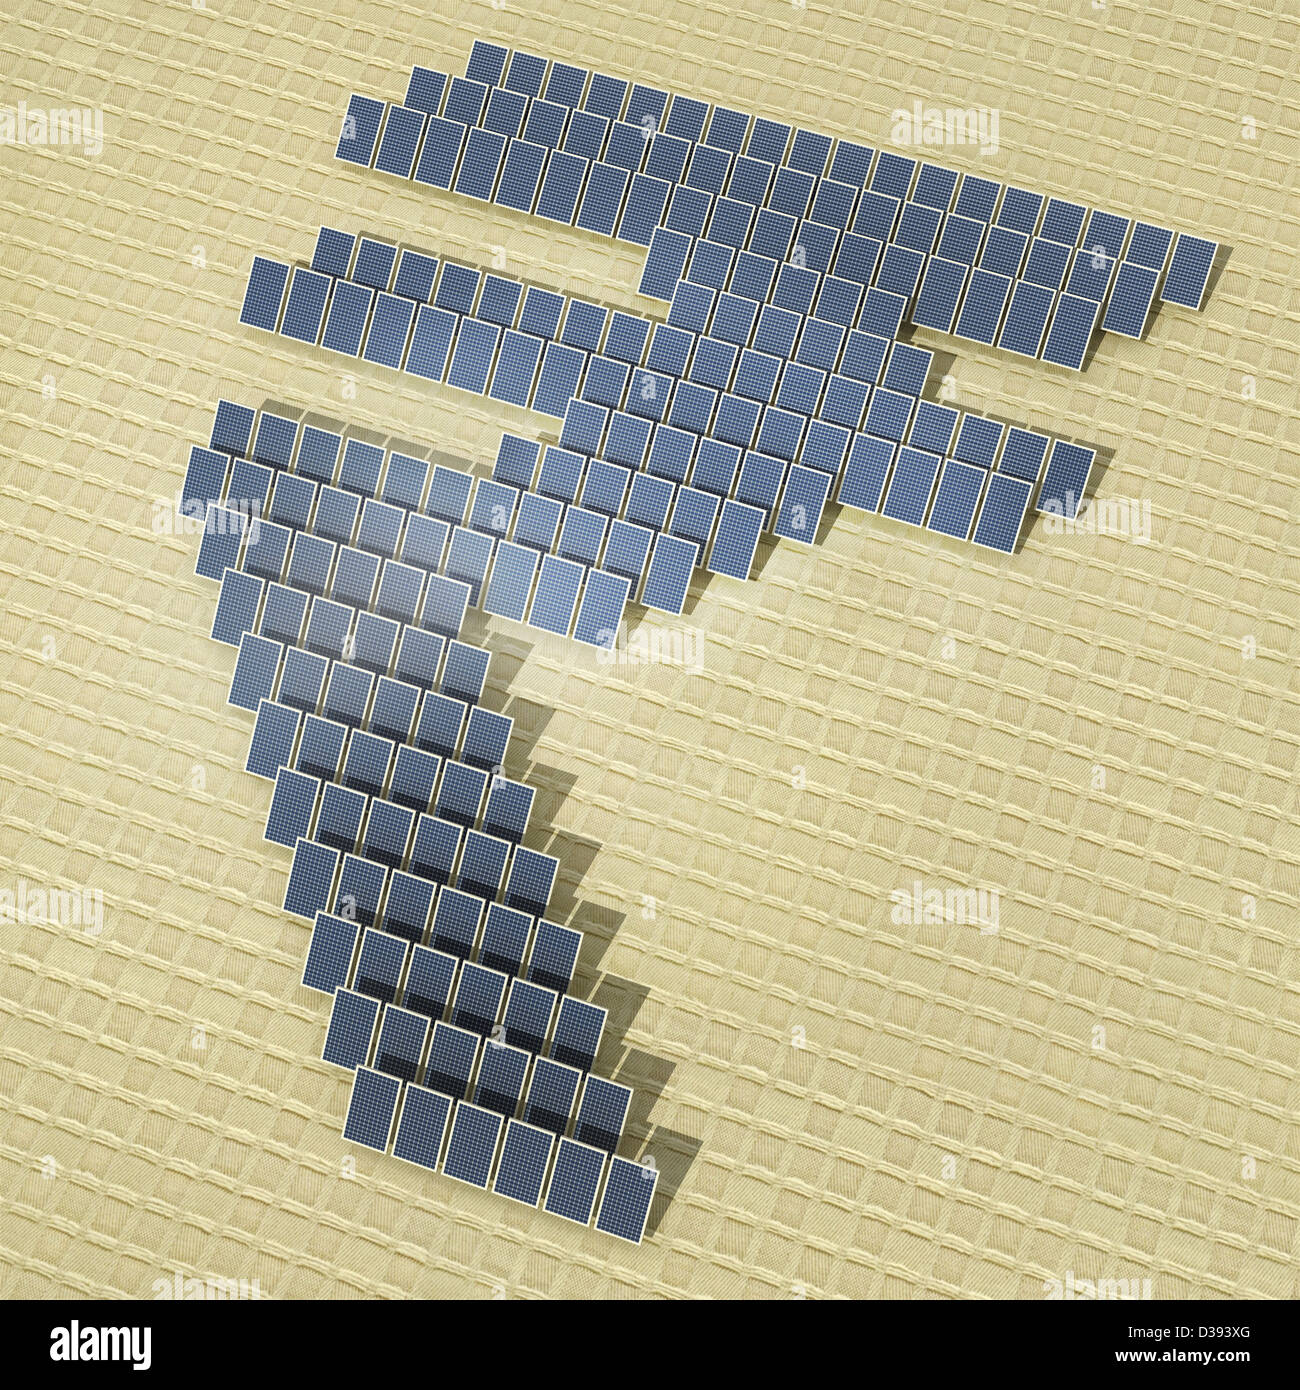 Solar panels in form of a rupee symbol - Stock Image